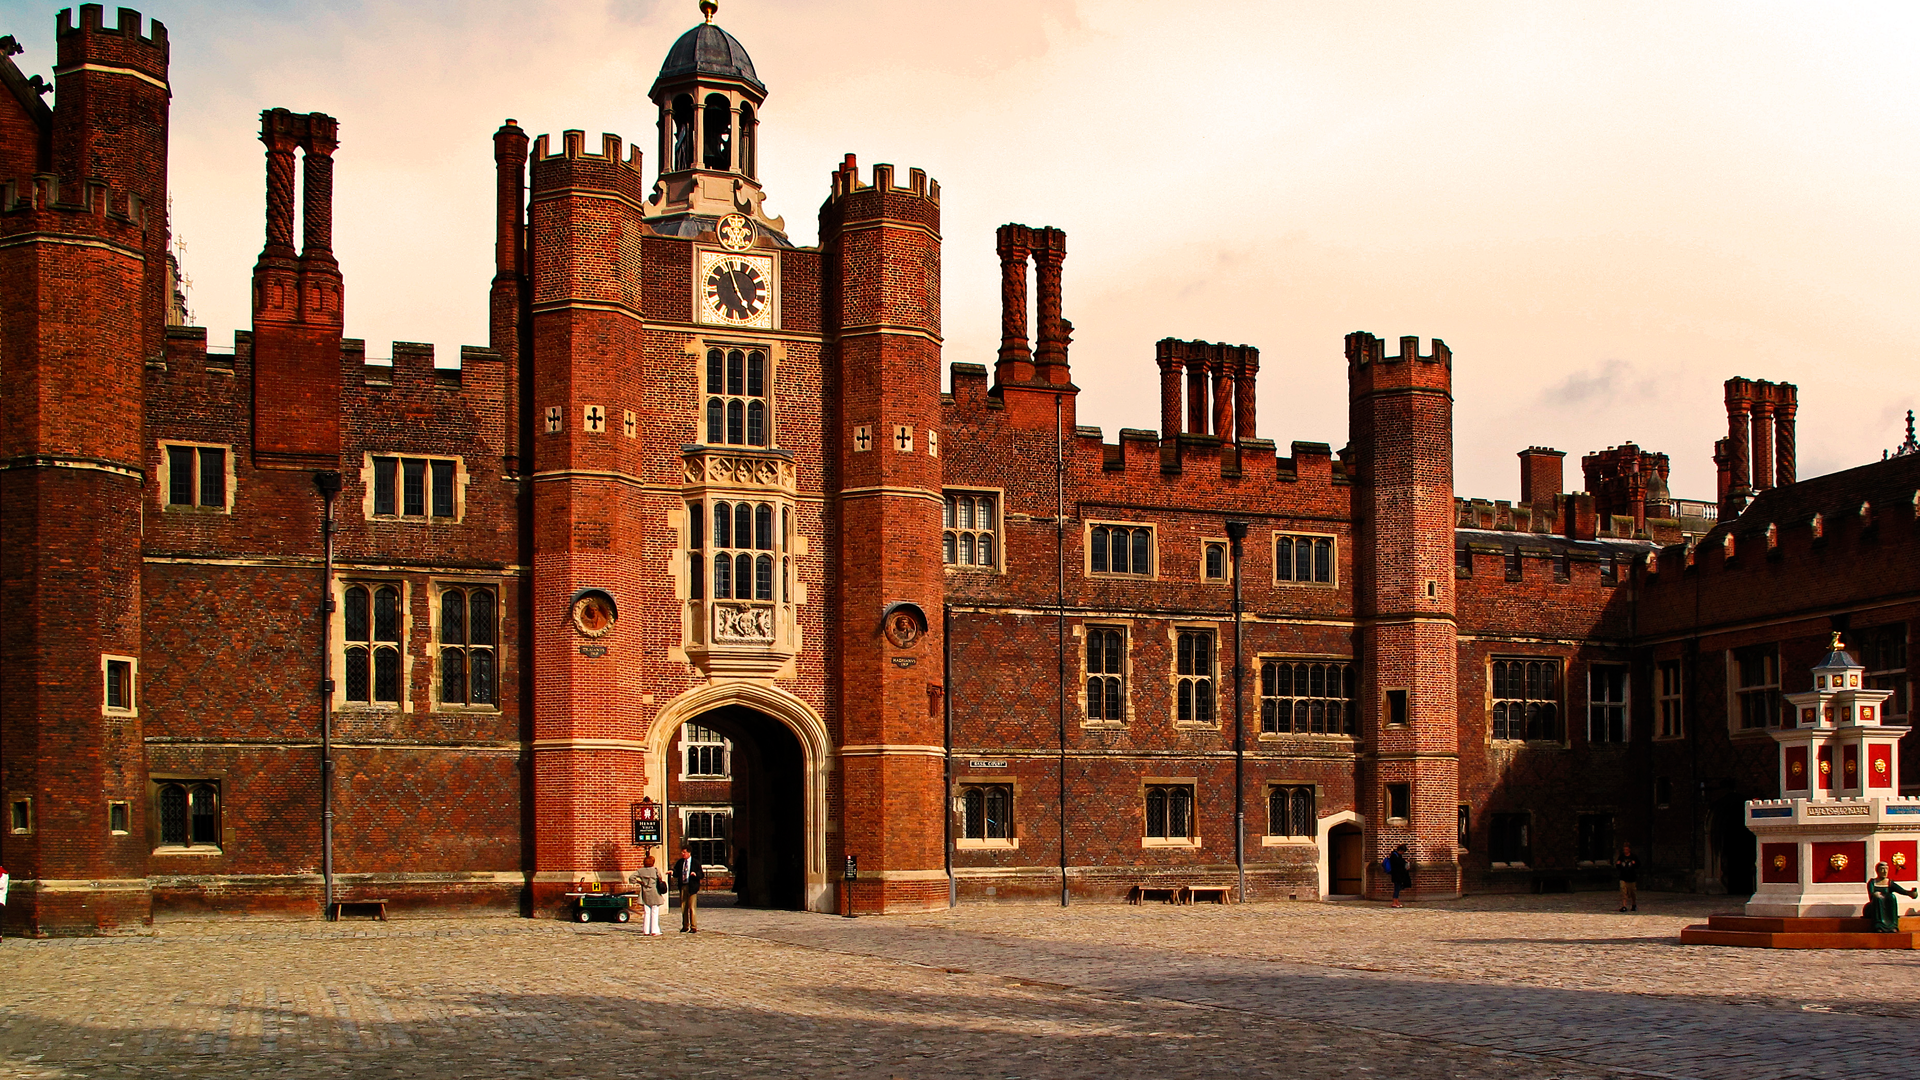 Hampton Court Palace: 500 years